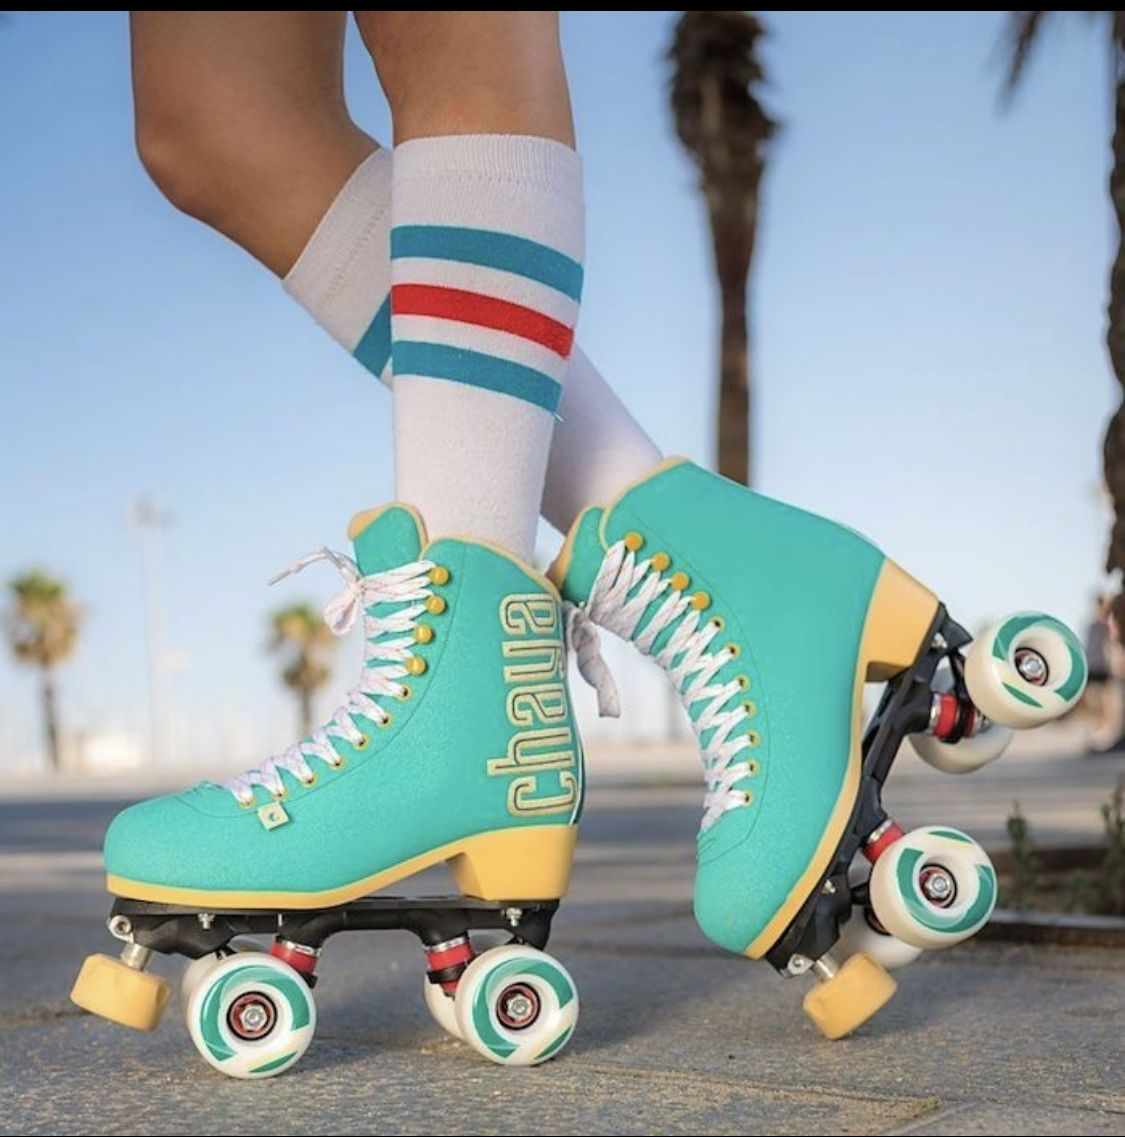 Pin by Cara Oneal on Proyectos in 2020 Roller skating